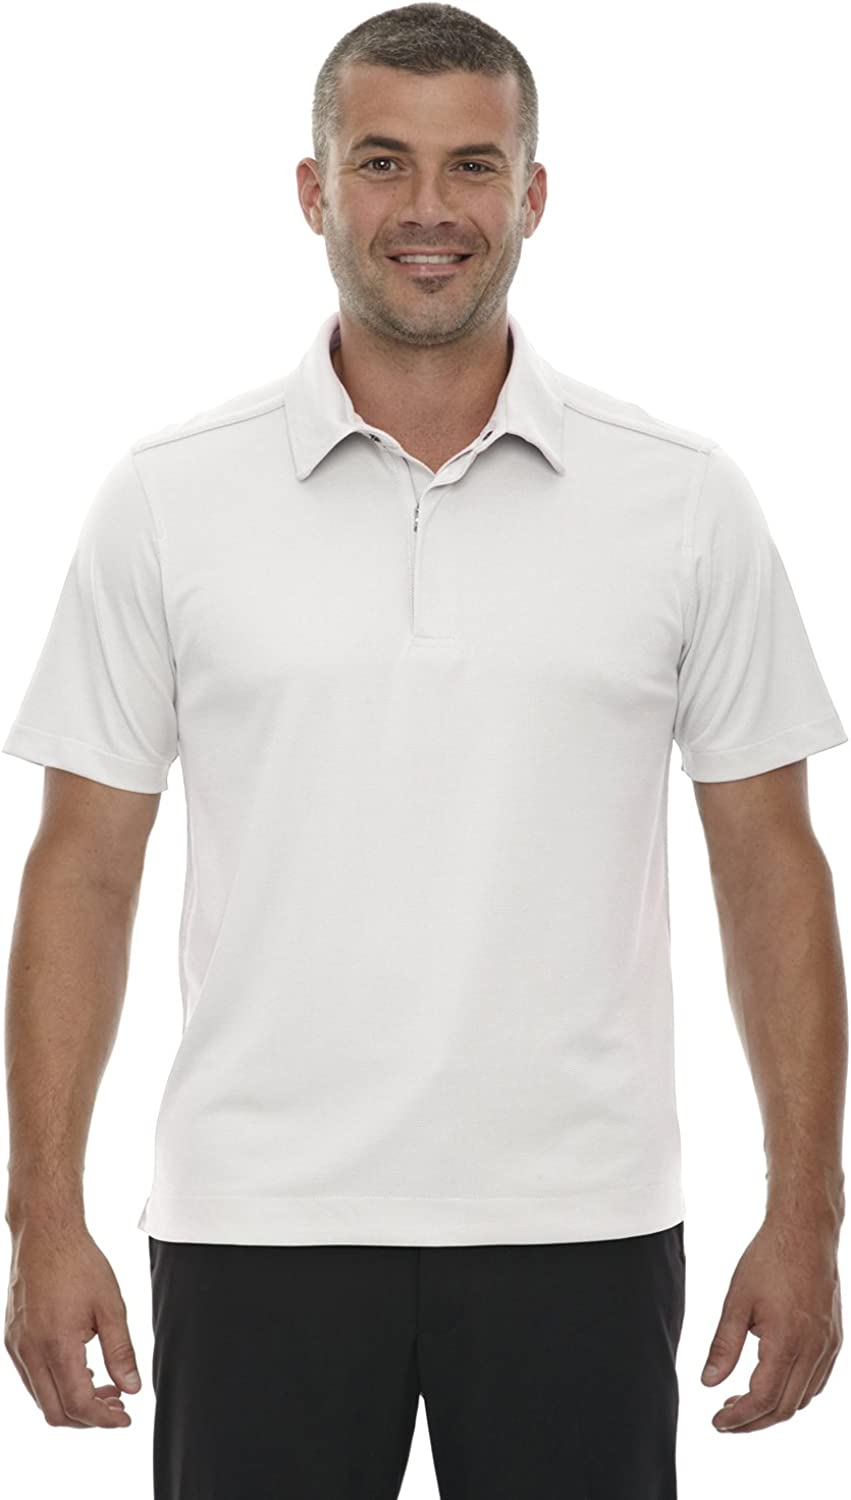 North End Evap Mens Quick Dry Performance Polo Shirt